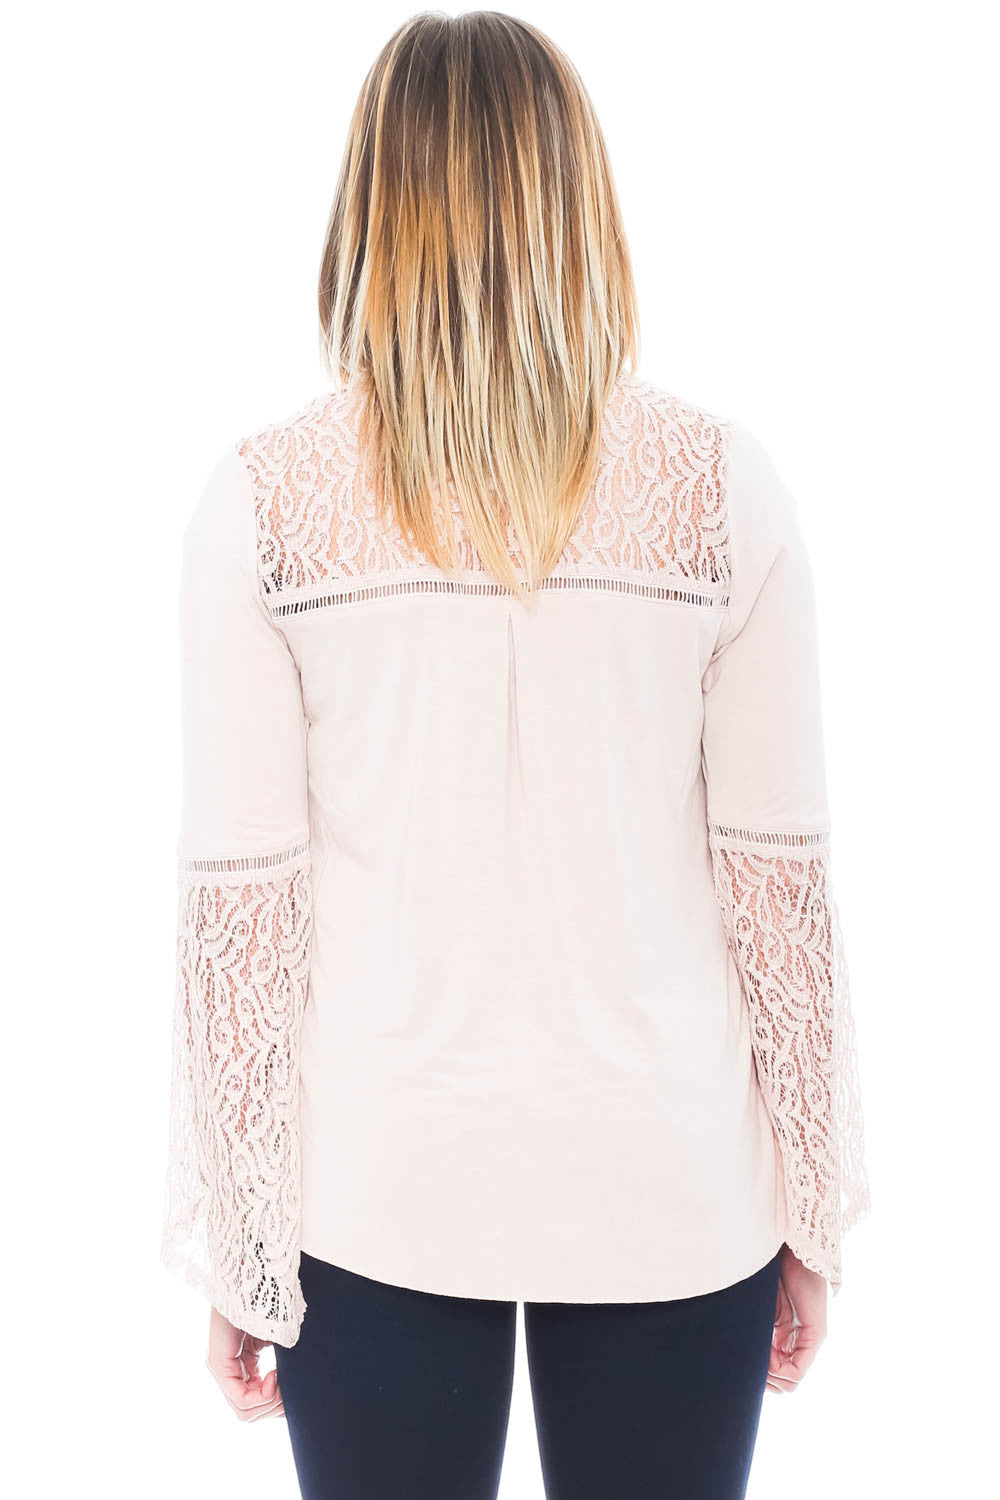 Shirt - Bell Sleeve Top with Criss-Cross Front By Democracy